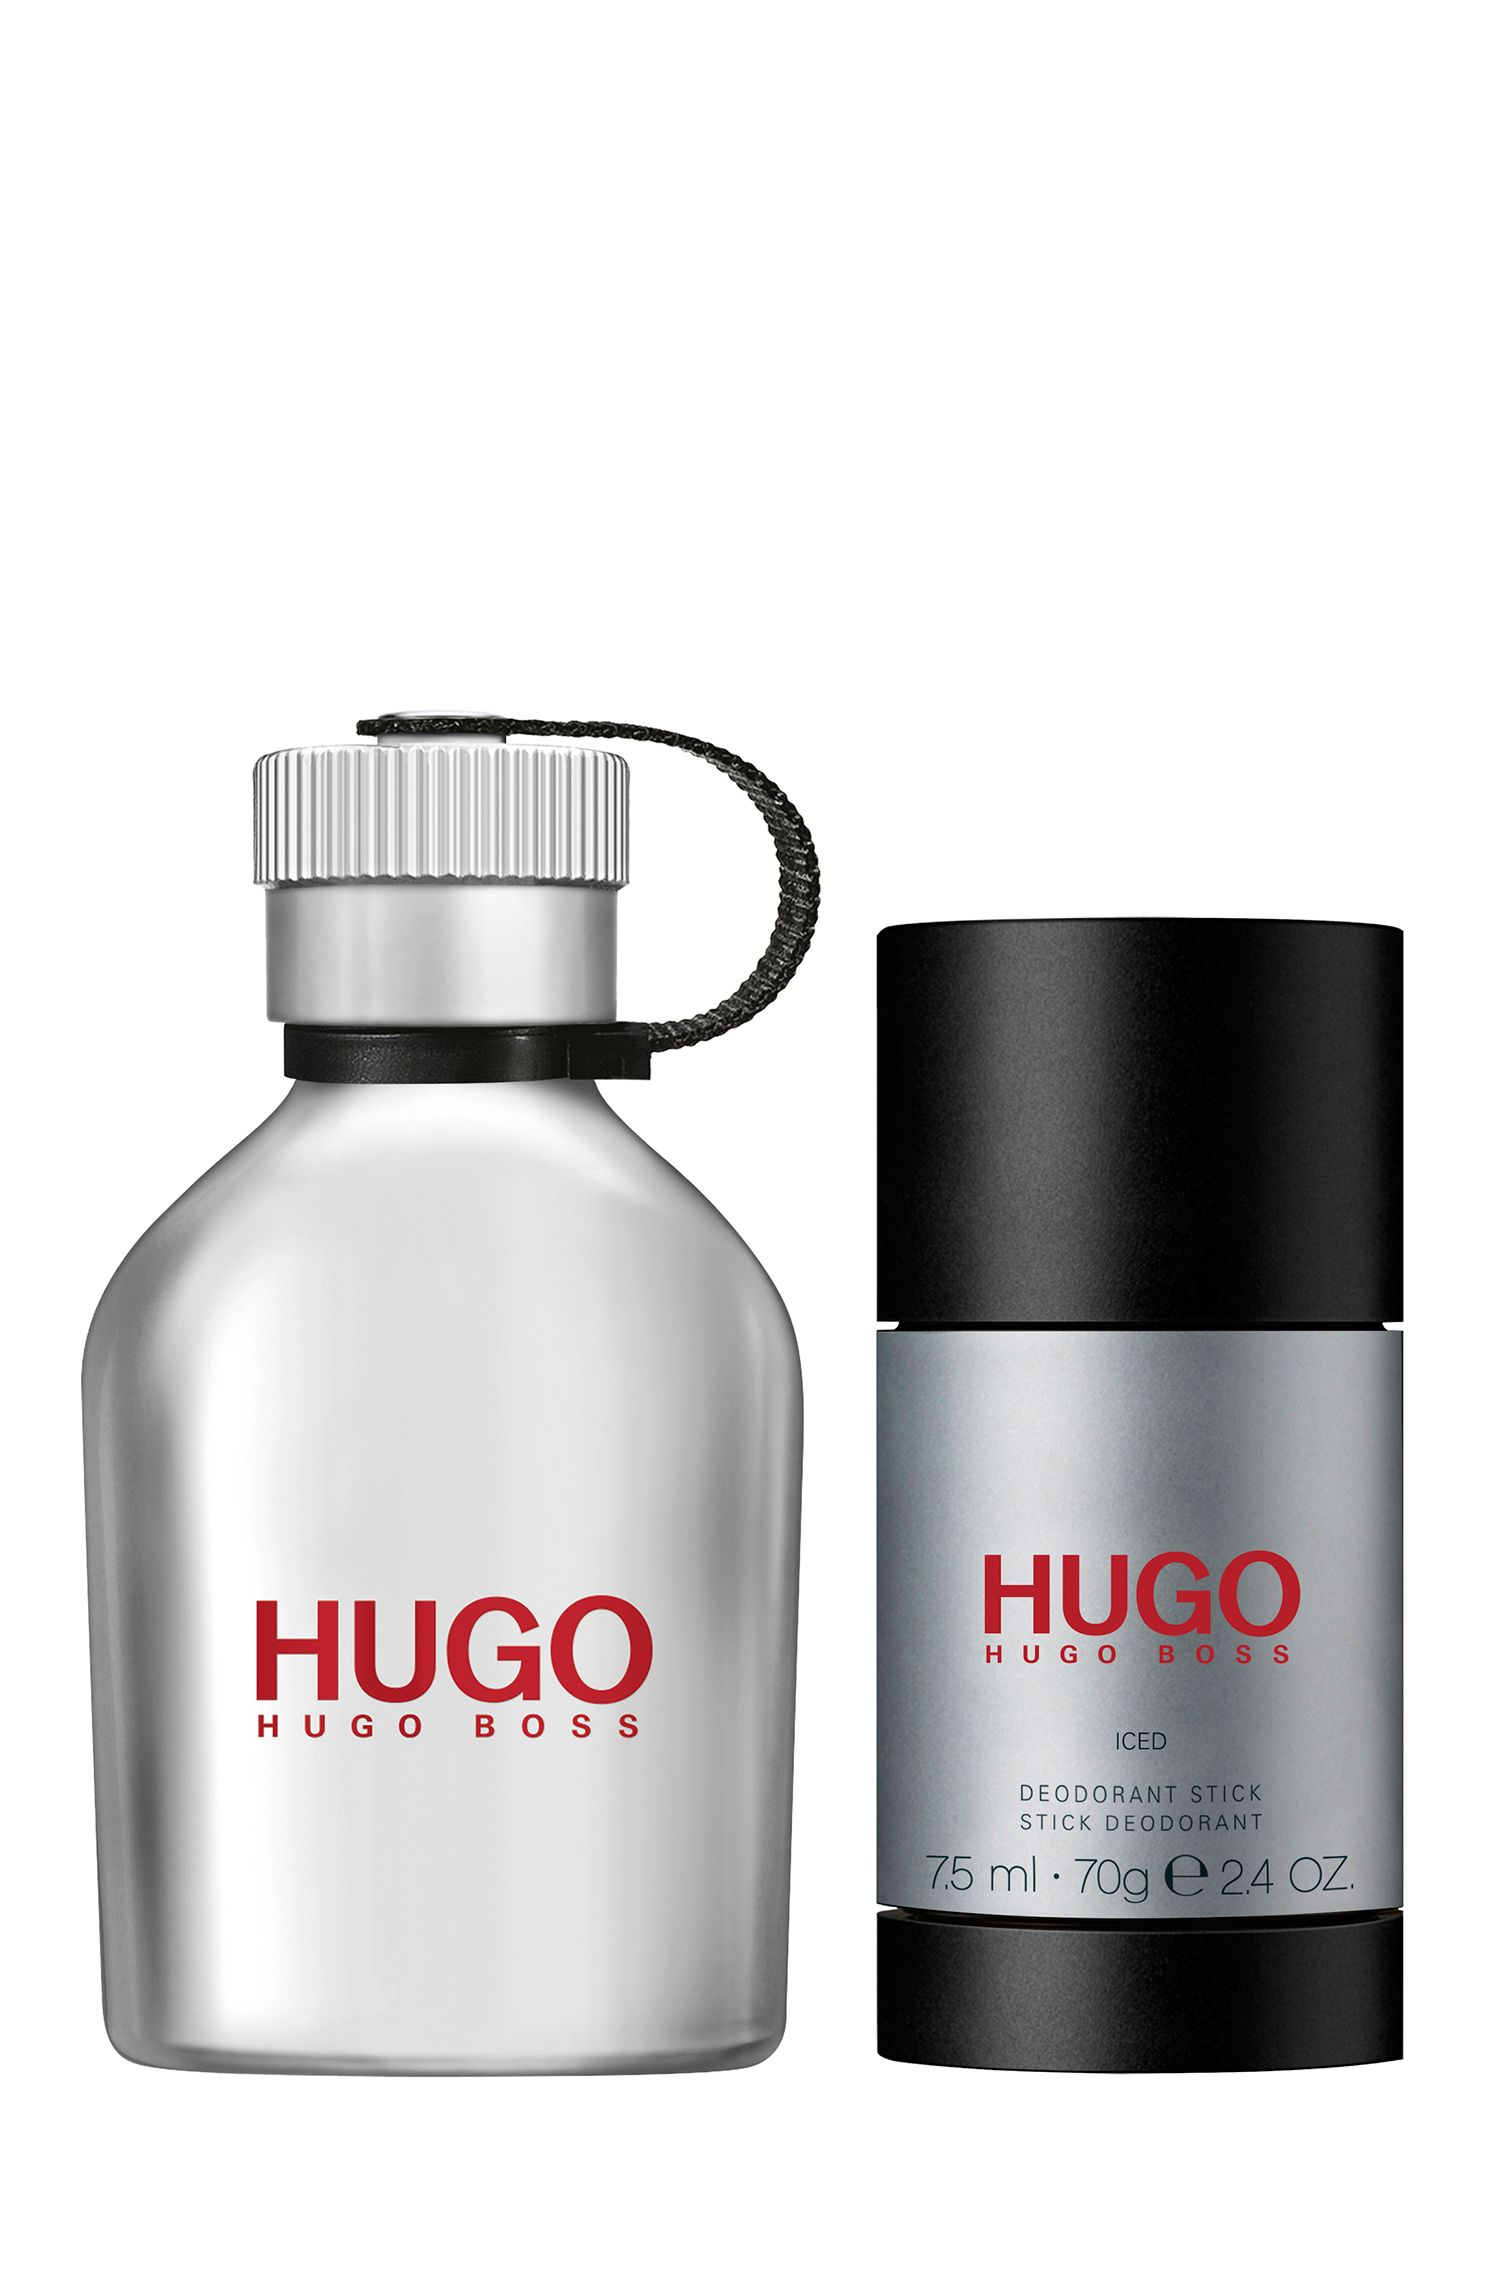 Set de regalo del perfume HUGO Iced